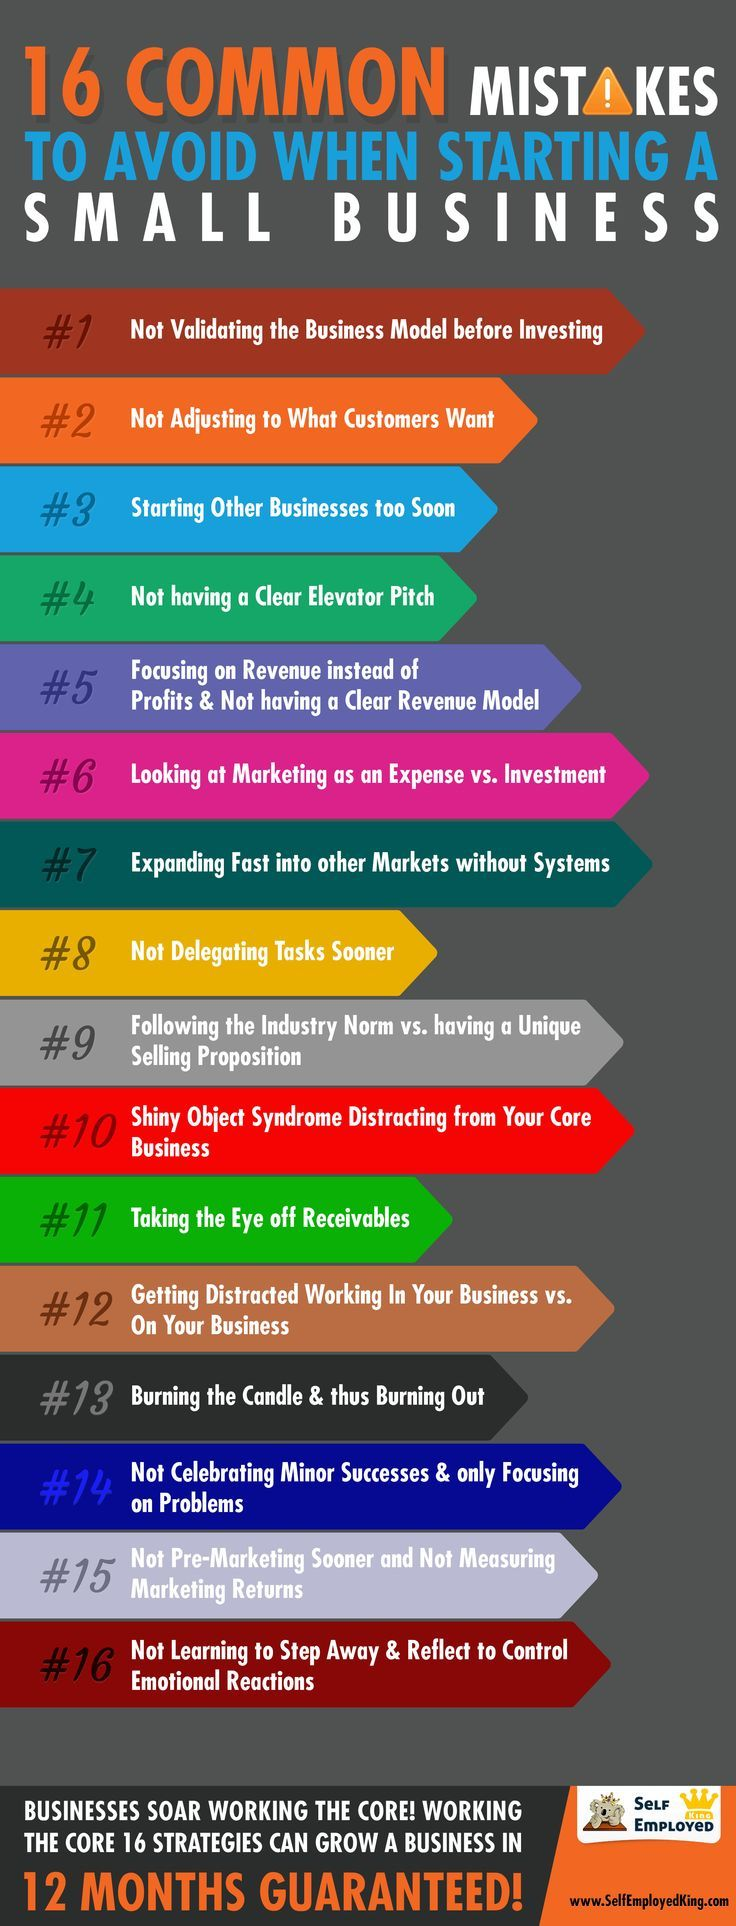 16 Common Mistakes to Avoid When Starting a Small Business from a Survey of over…